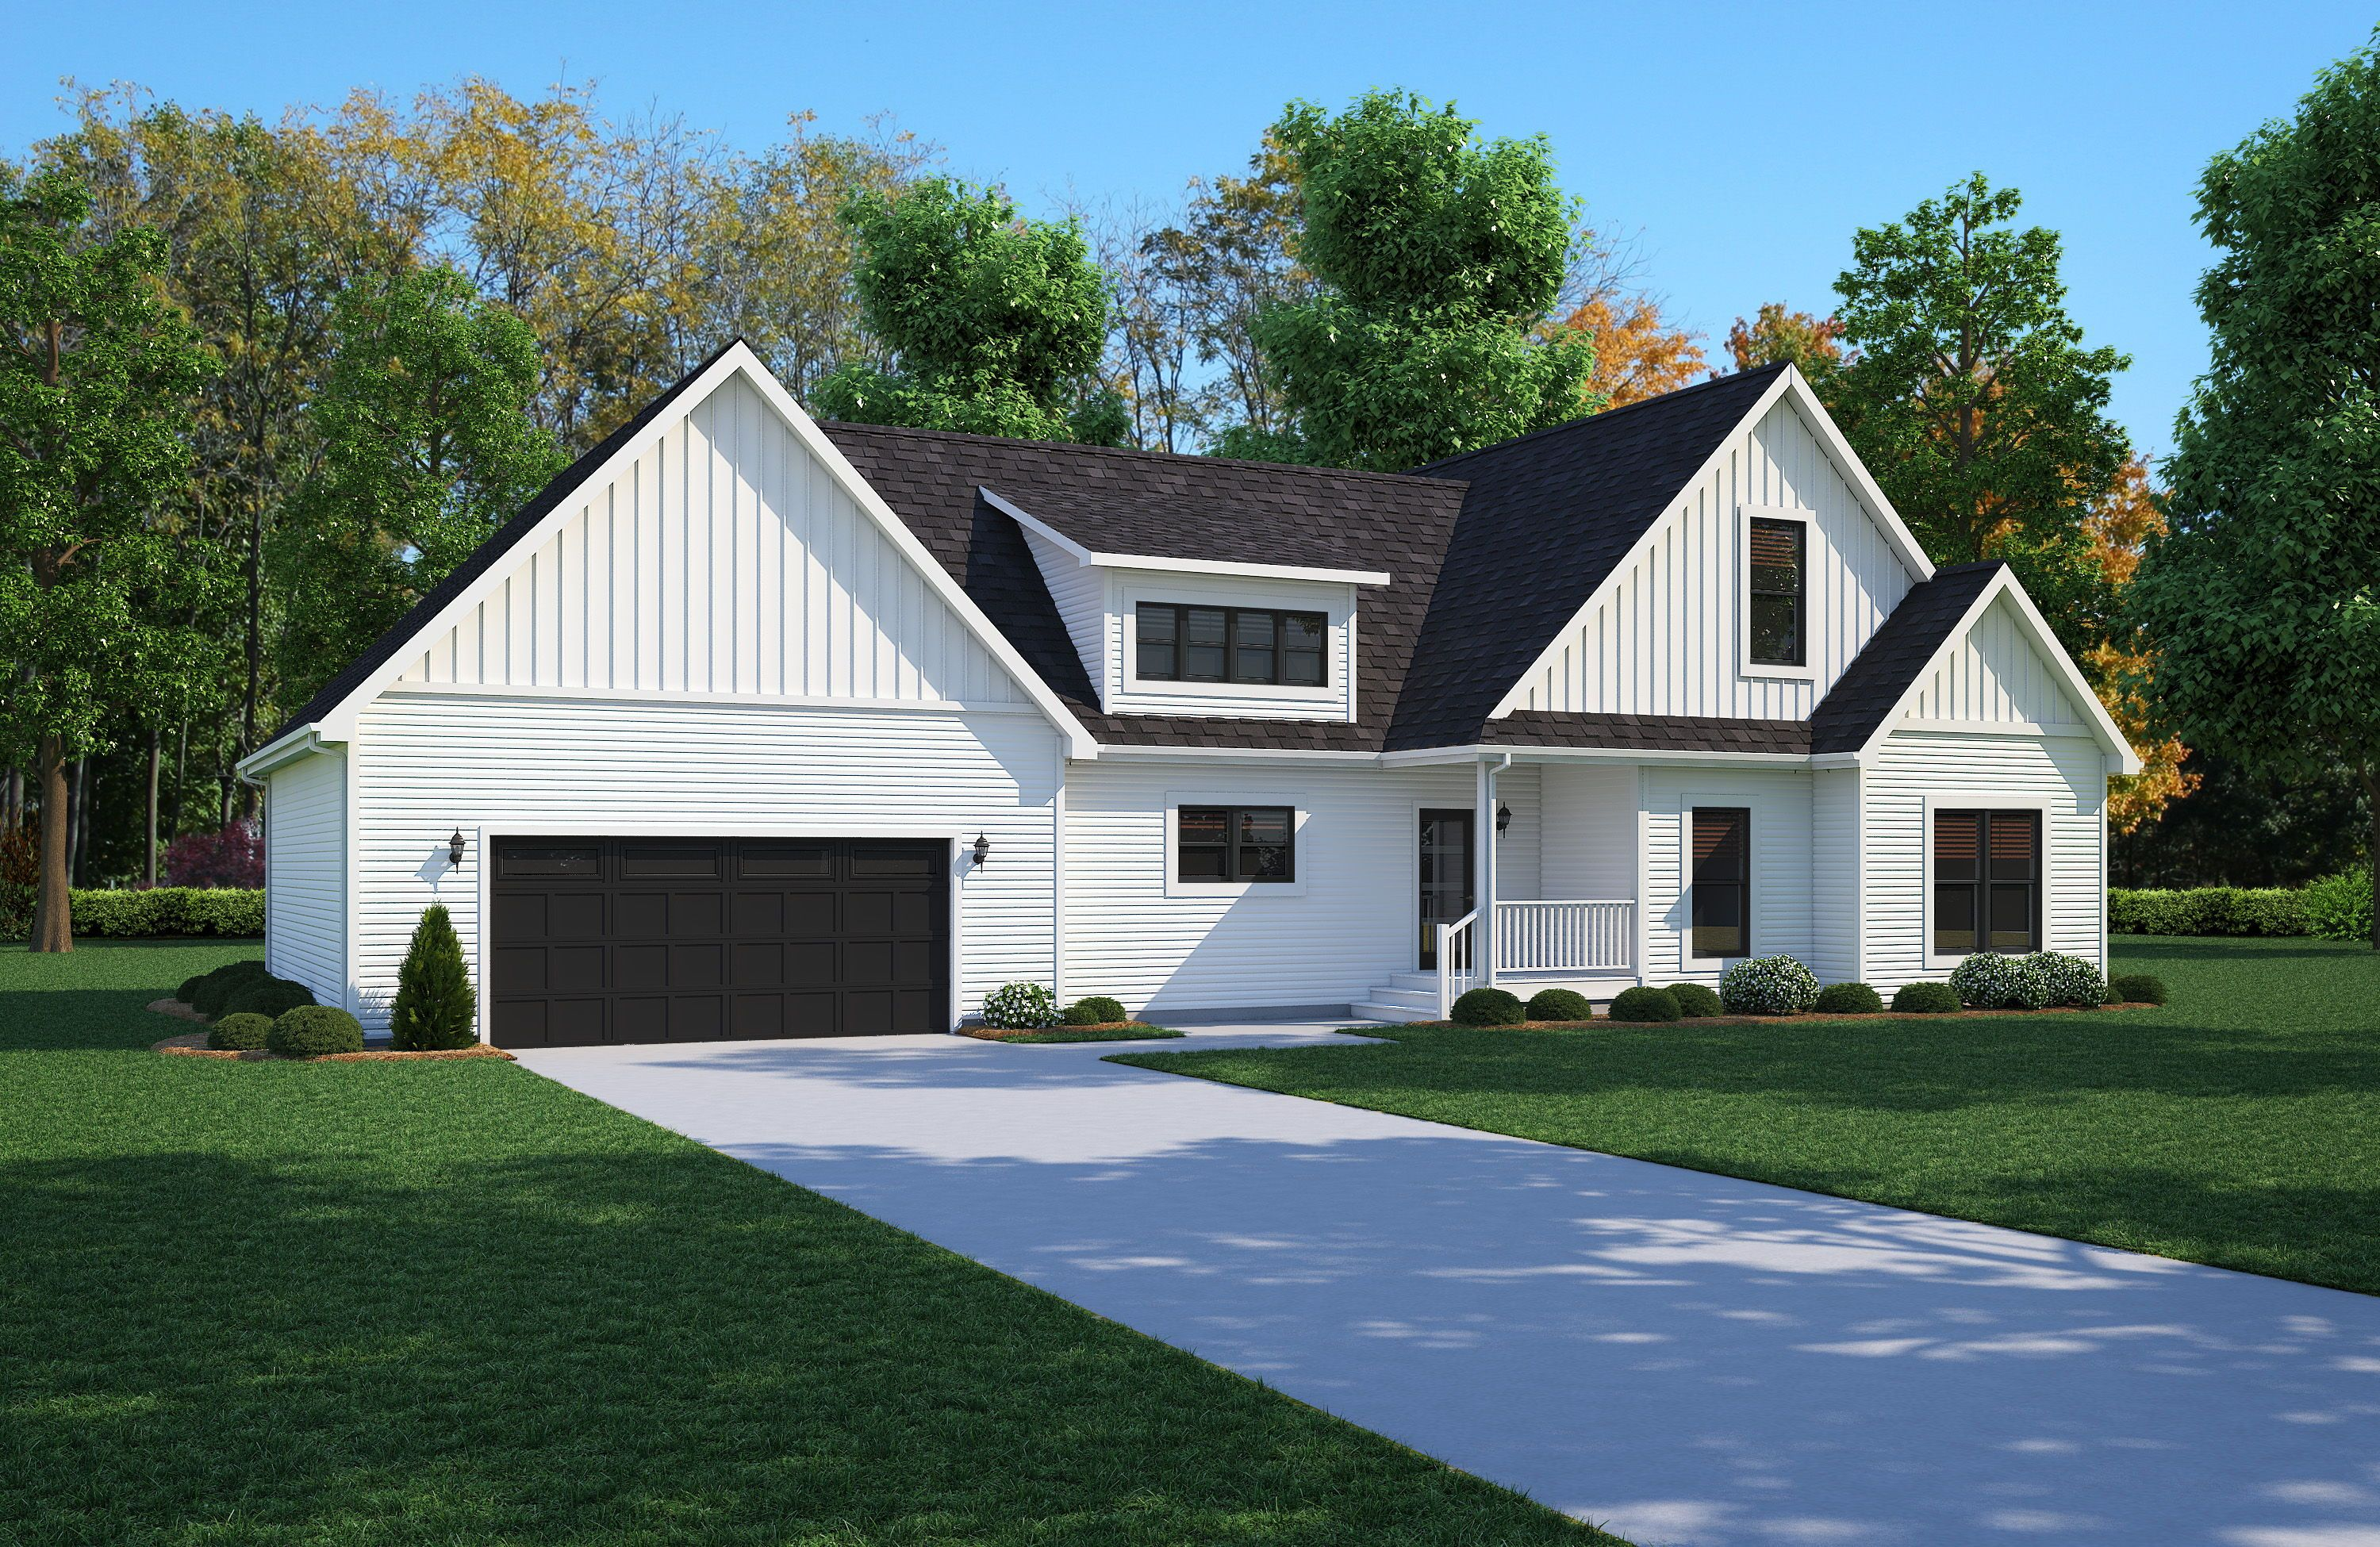 Image Of Avery Rochester Homes Sale House Modular Homes